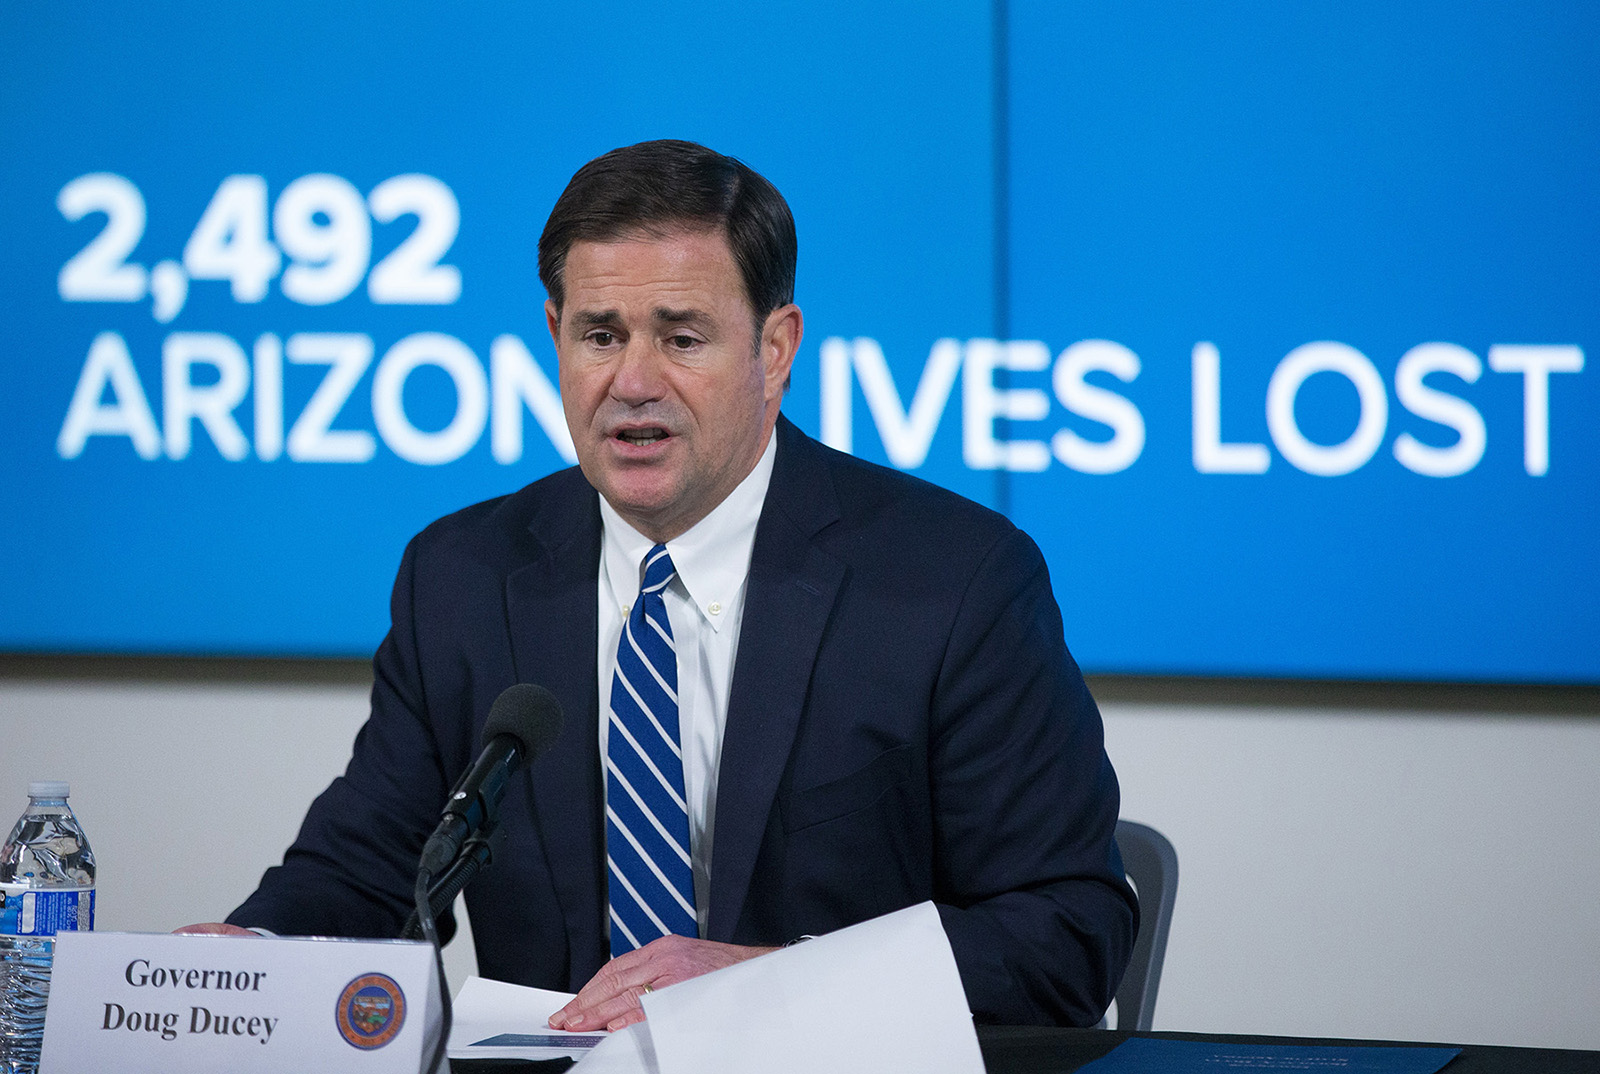 Arizona Gov. Doug Ducey takes questions from reporters during a COVID-19 press conference on Thursday, July 16, in Phoenix.